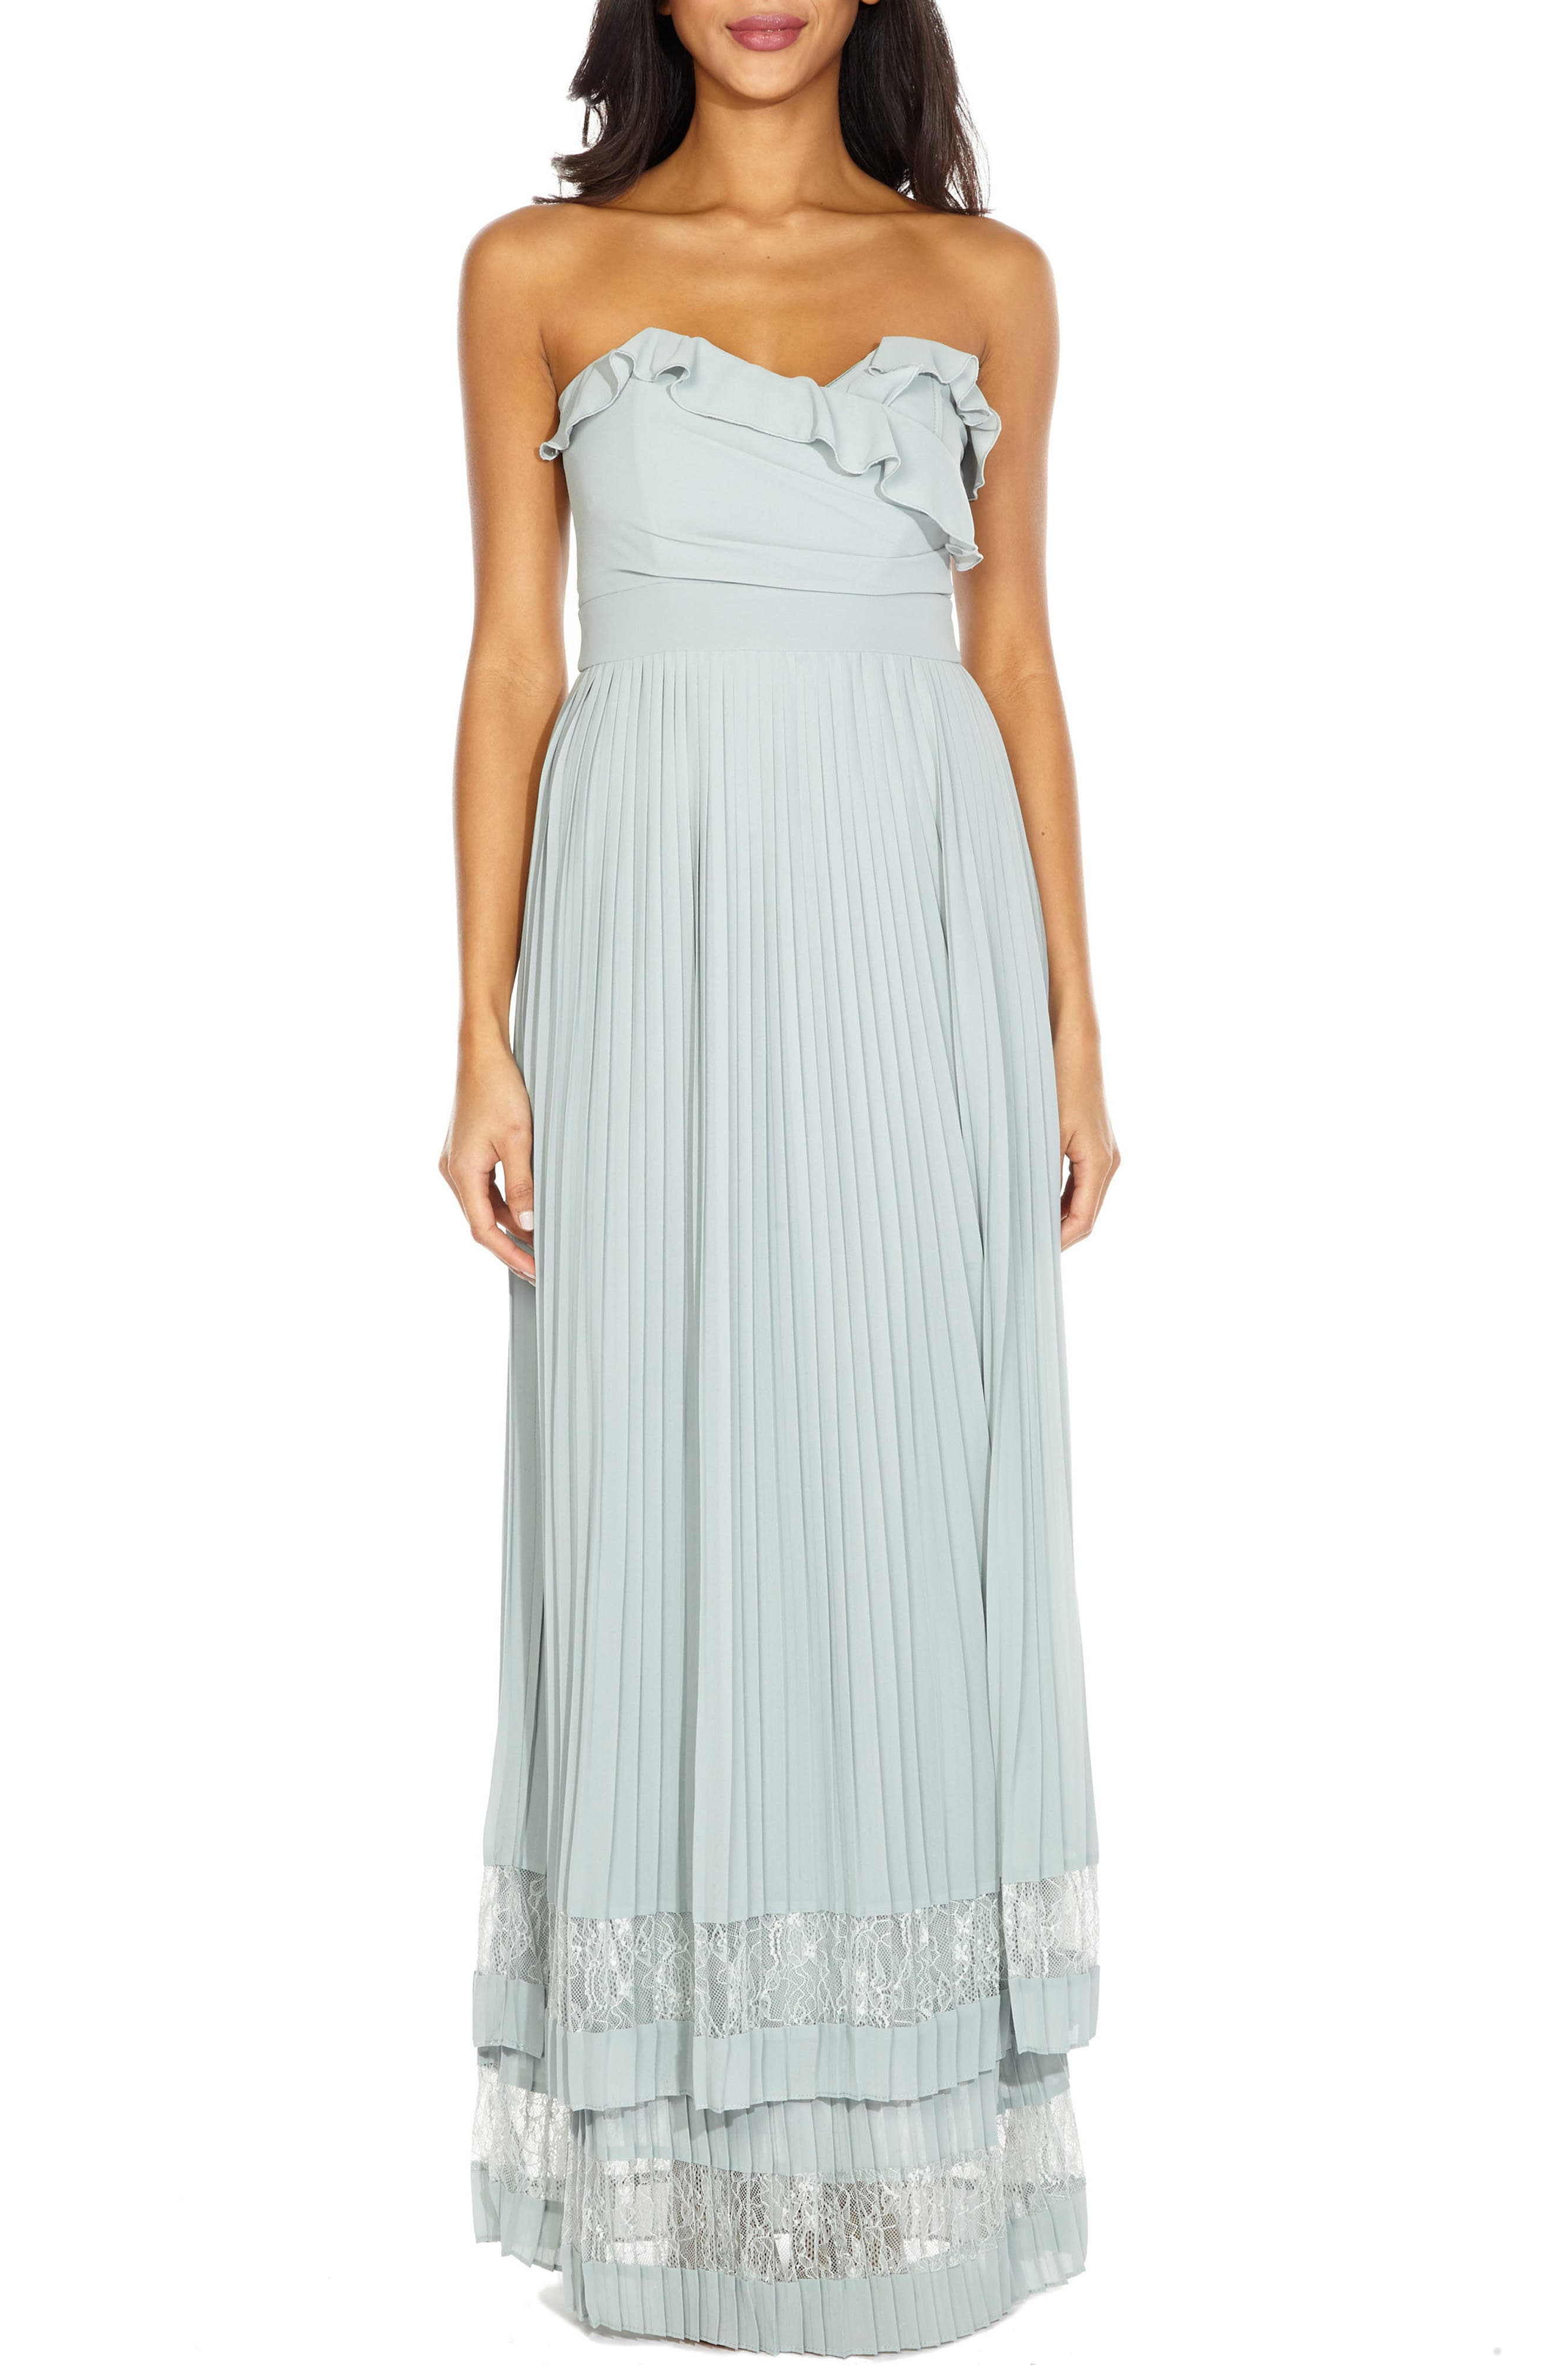 Akira Strapless Gown,                             Main thumbnail 1, color,                             330